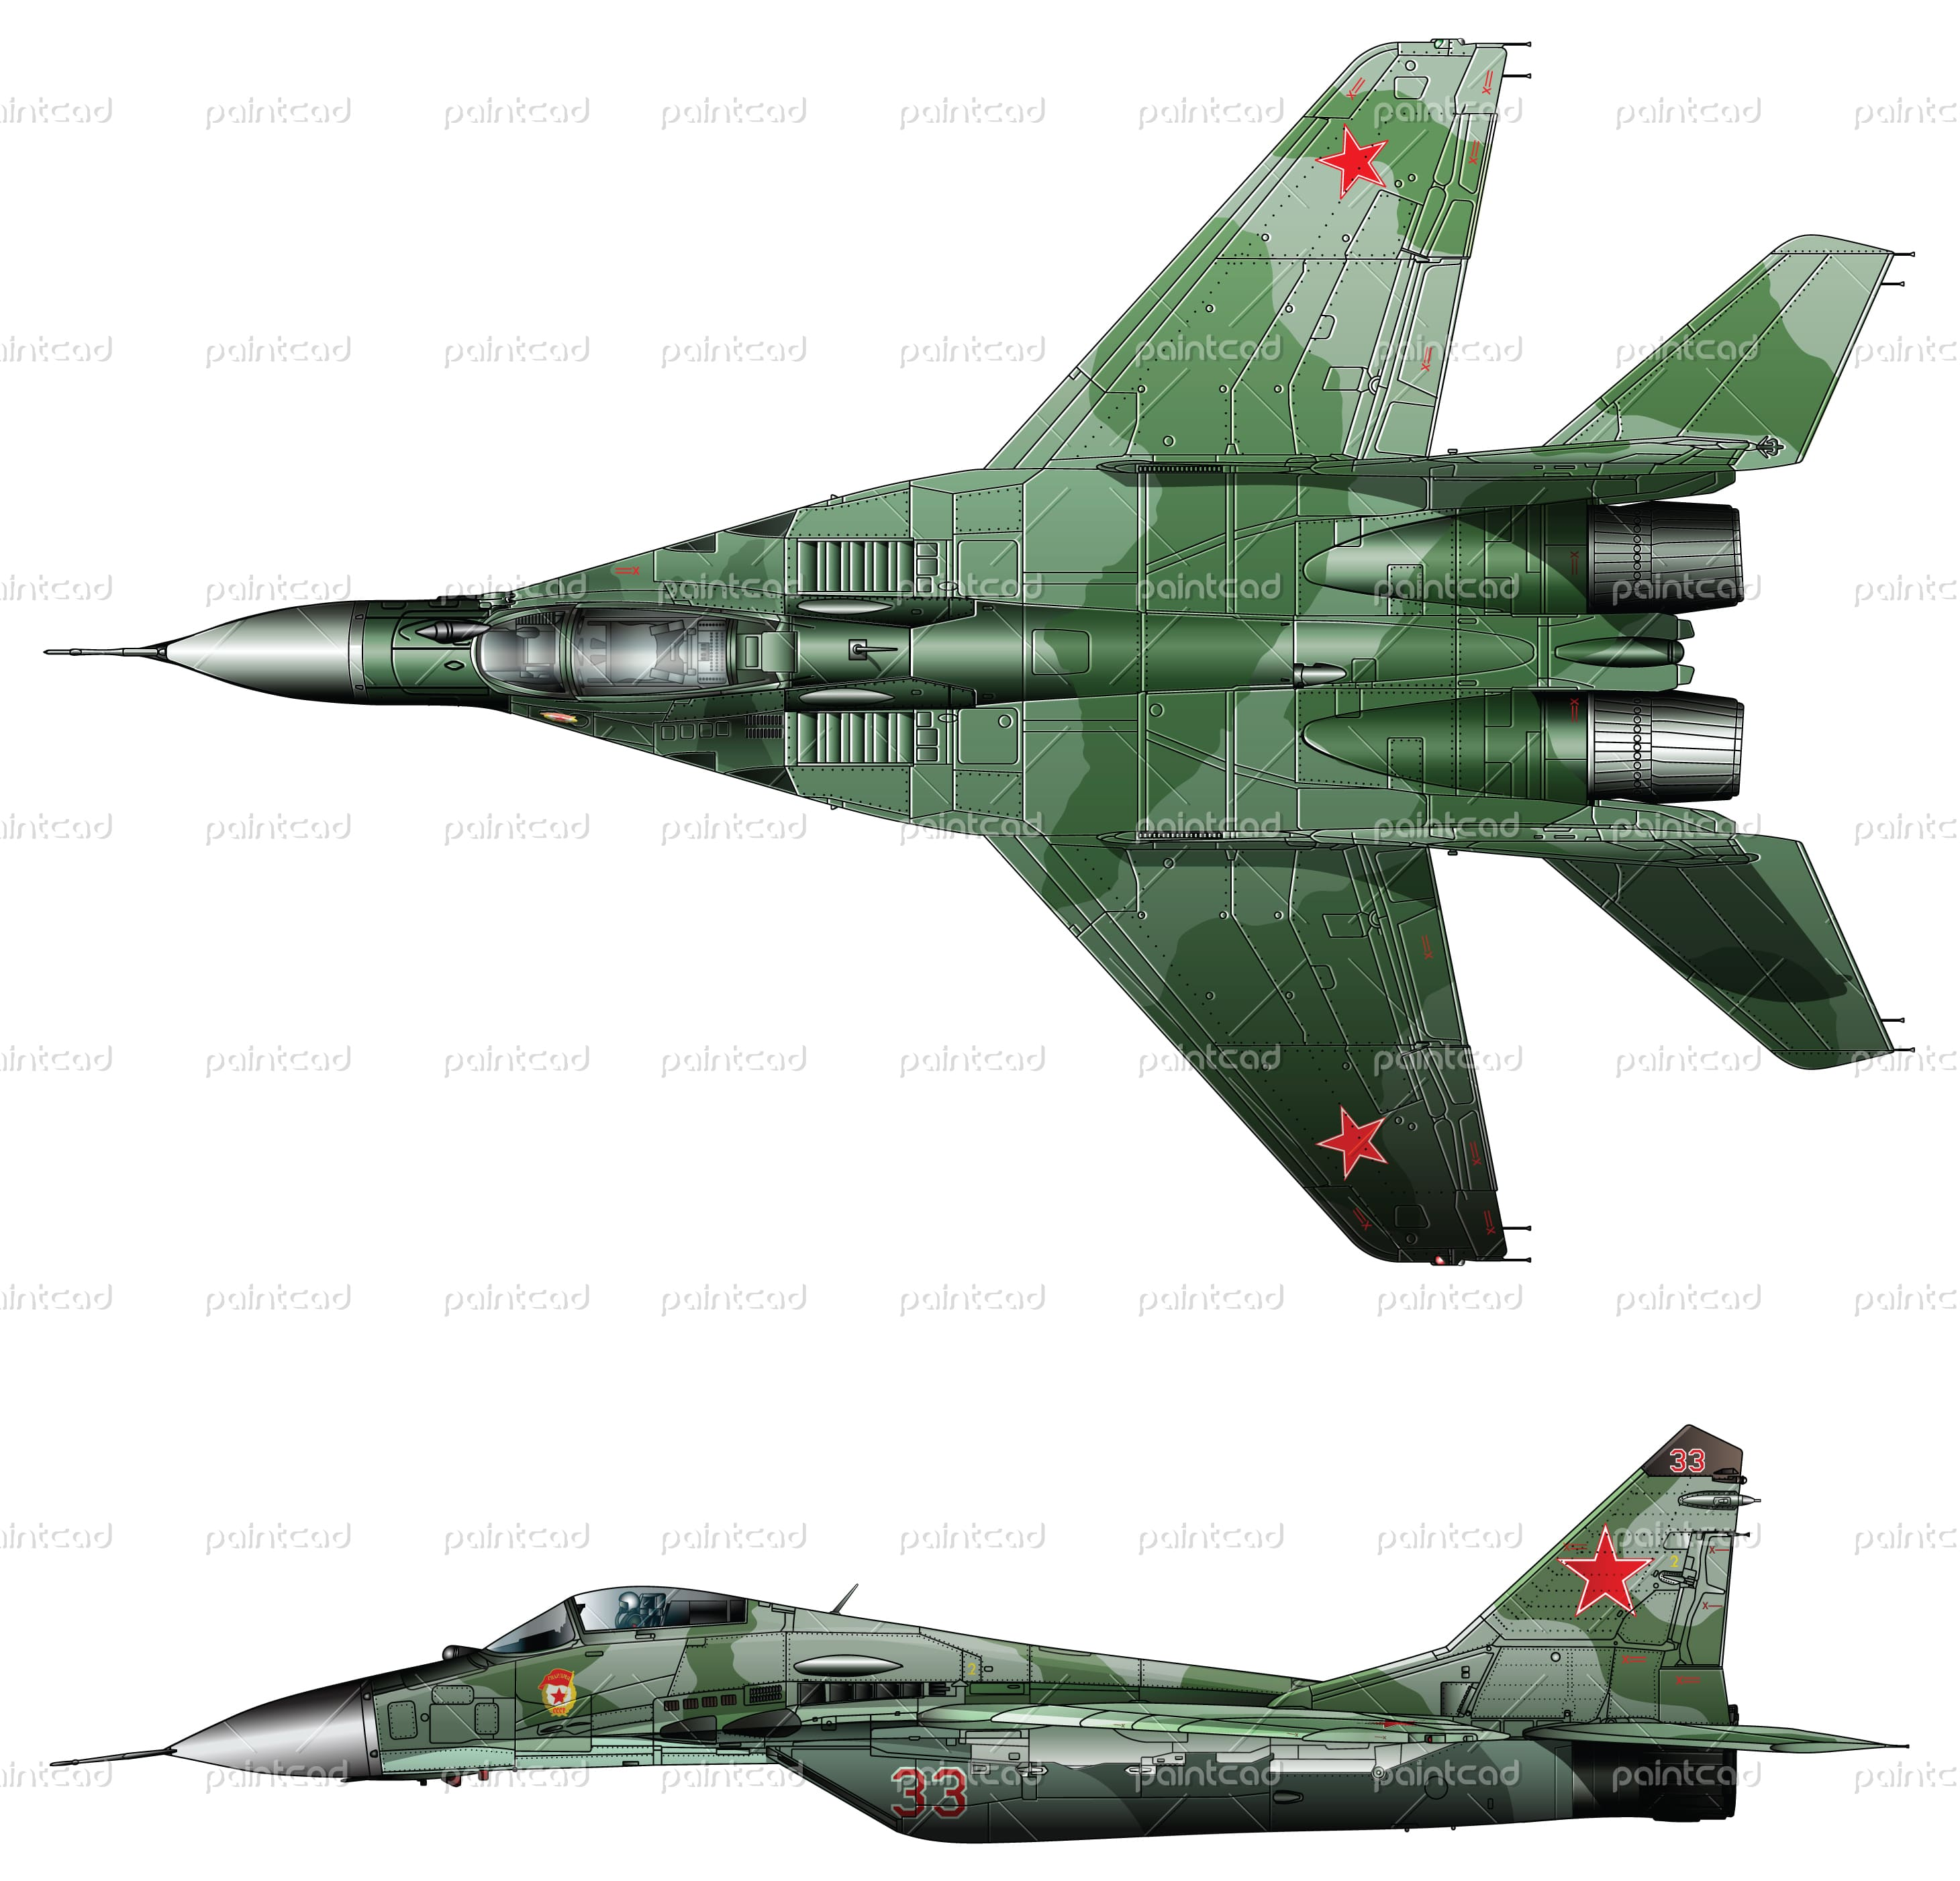 2920x2802 Jet Fighter Mig 29 Fulcrum Used By Air Forces Of Former Ussr